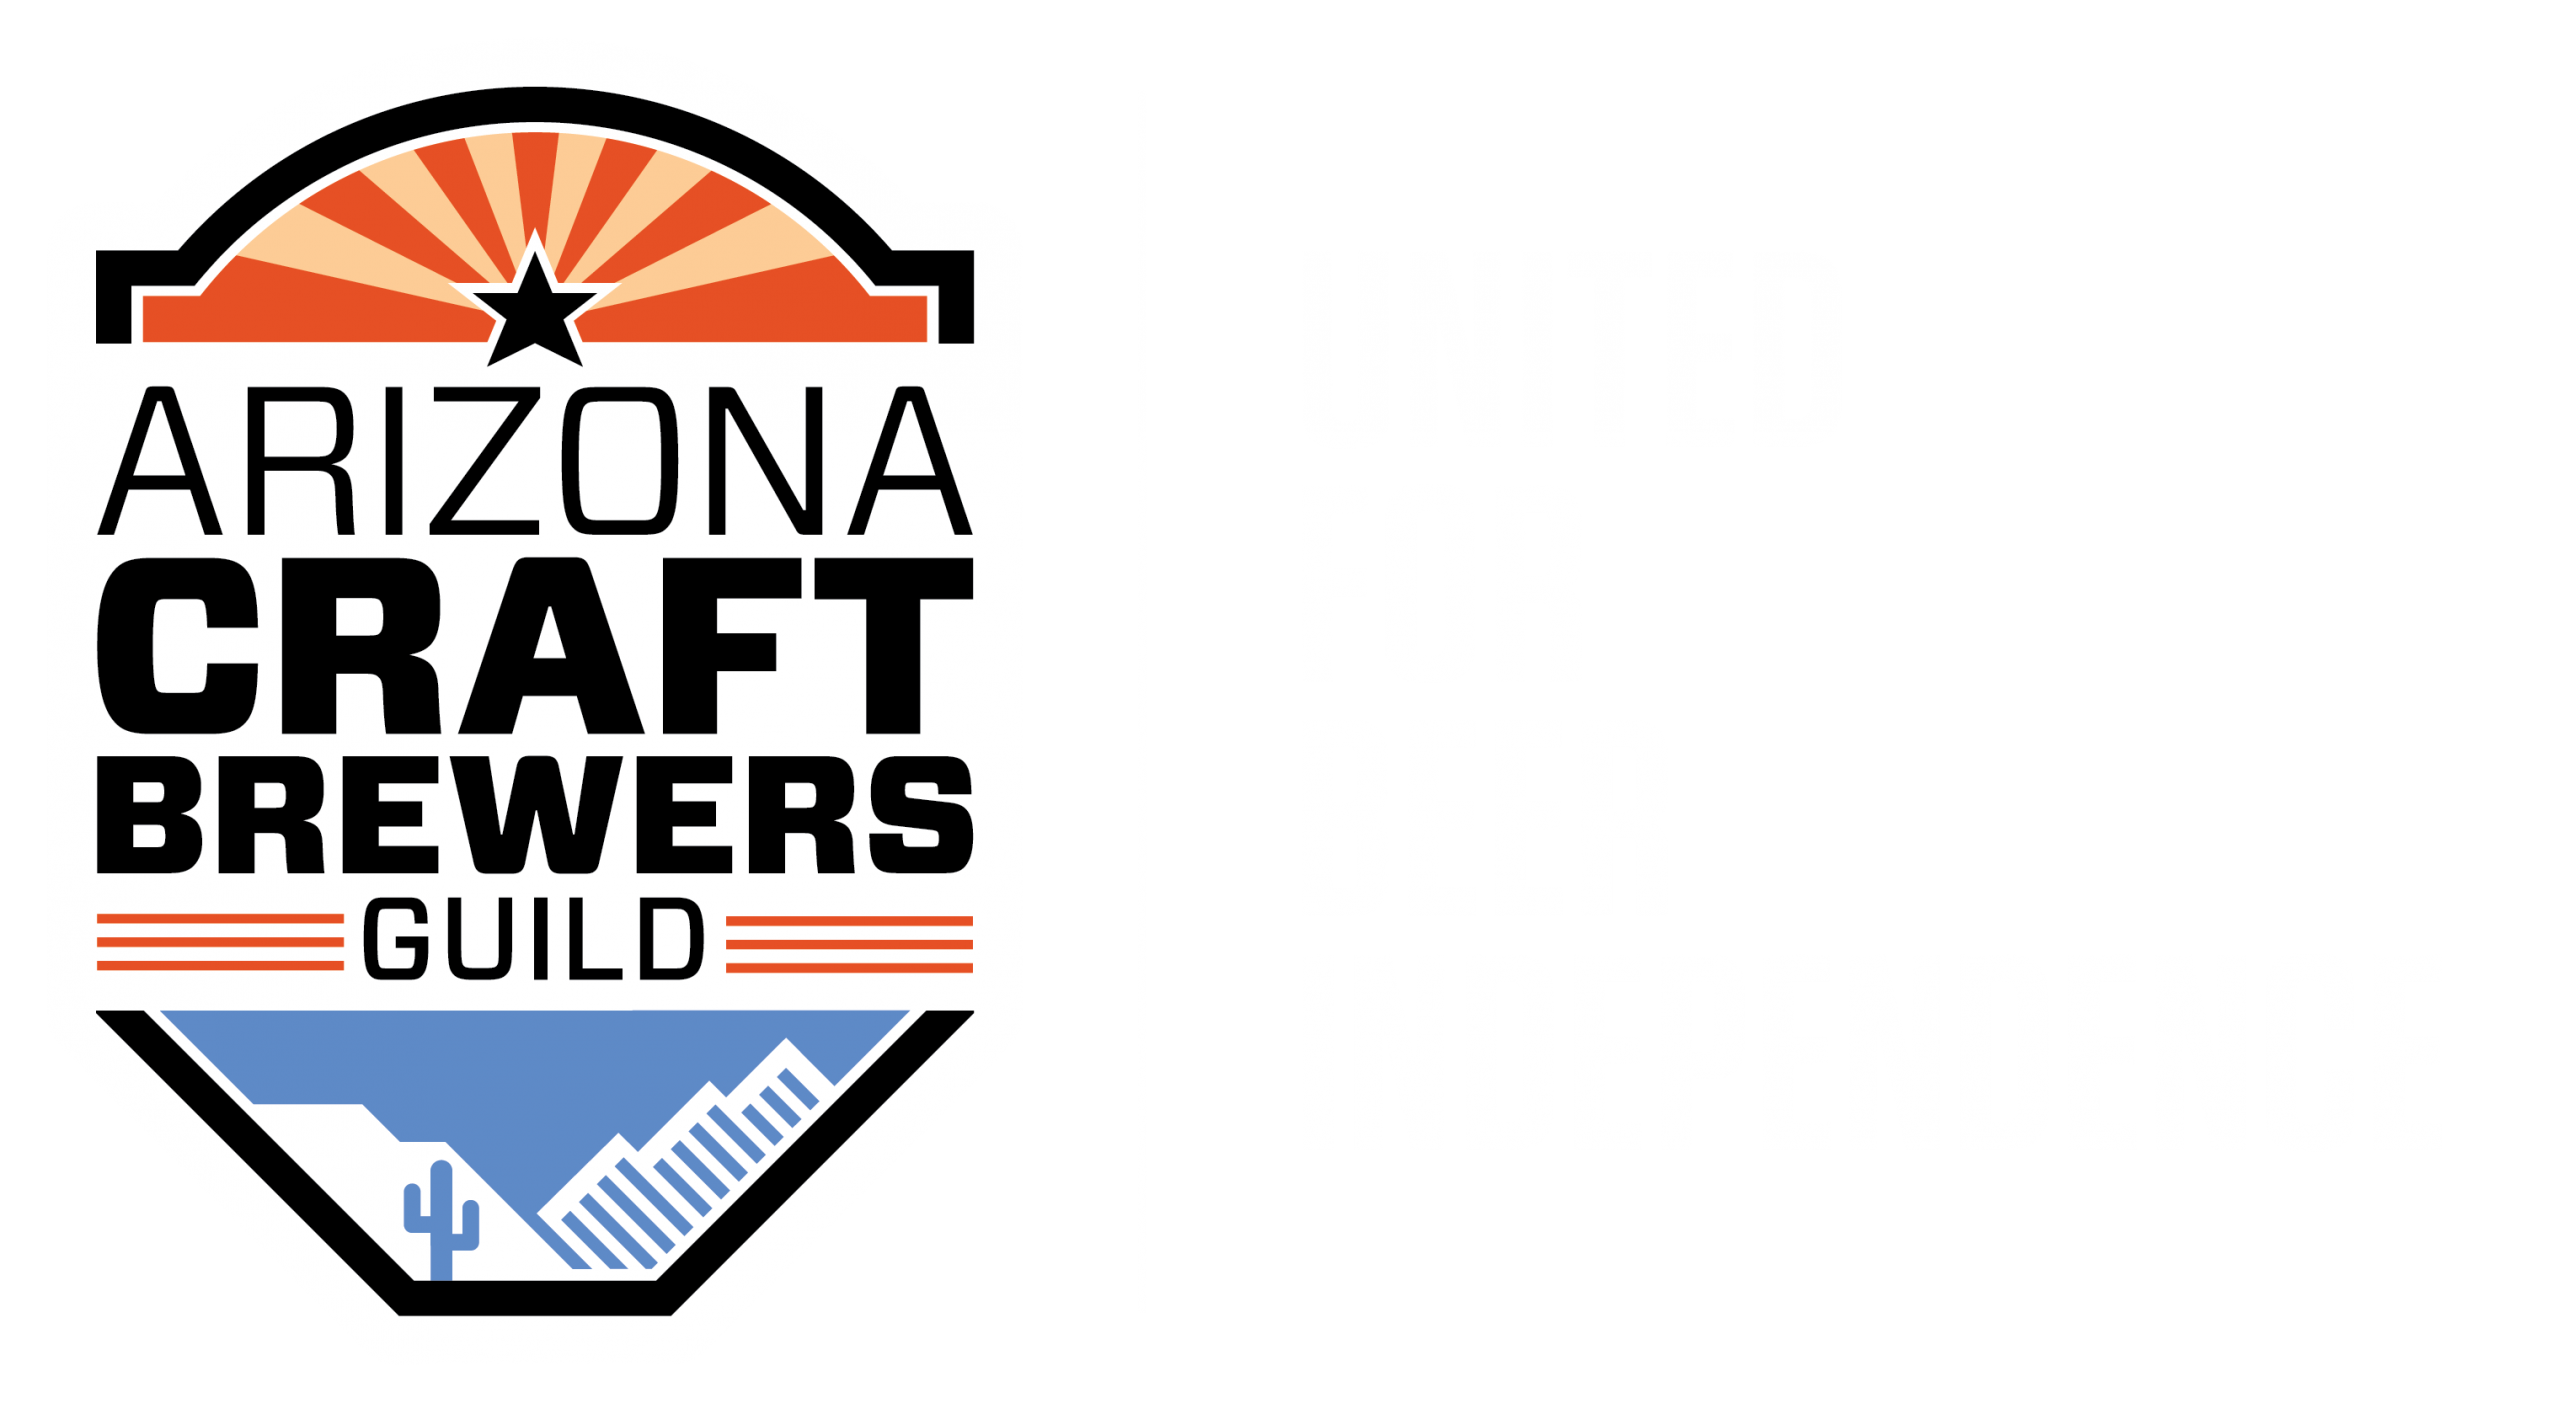 Courtesy Fleet Sales | Arizona Craft Brewers Guild